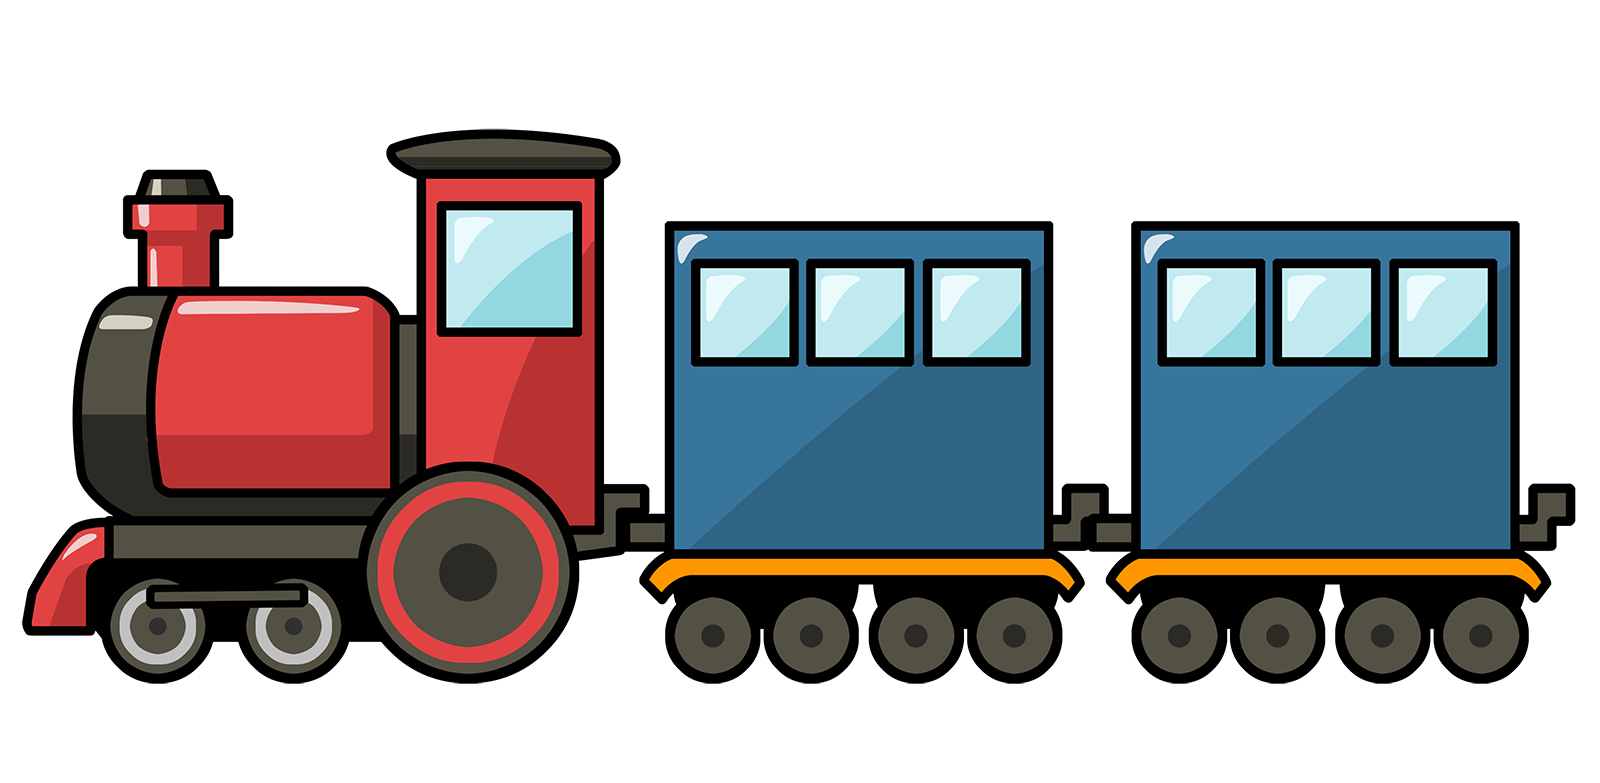 Train clipart #3, Download drawings